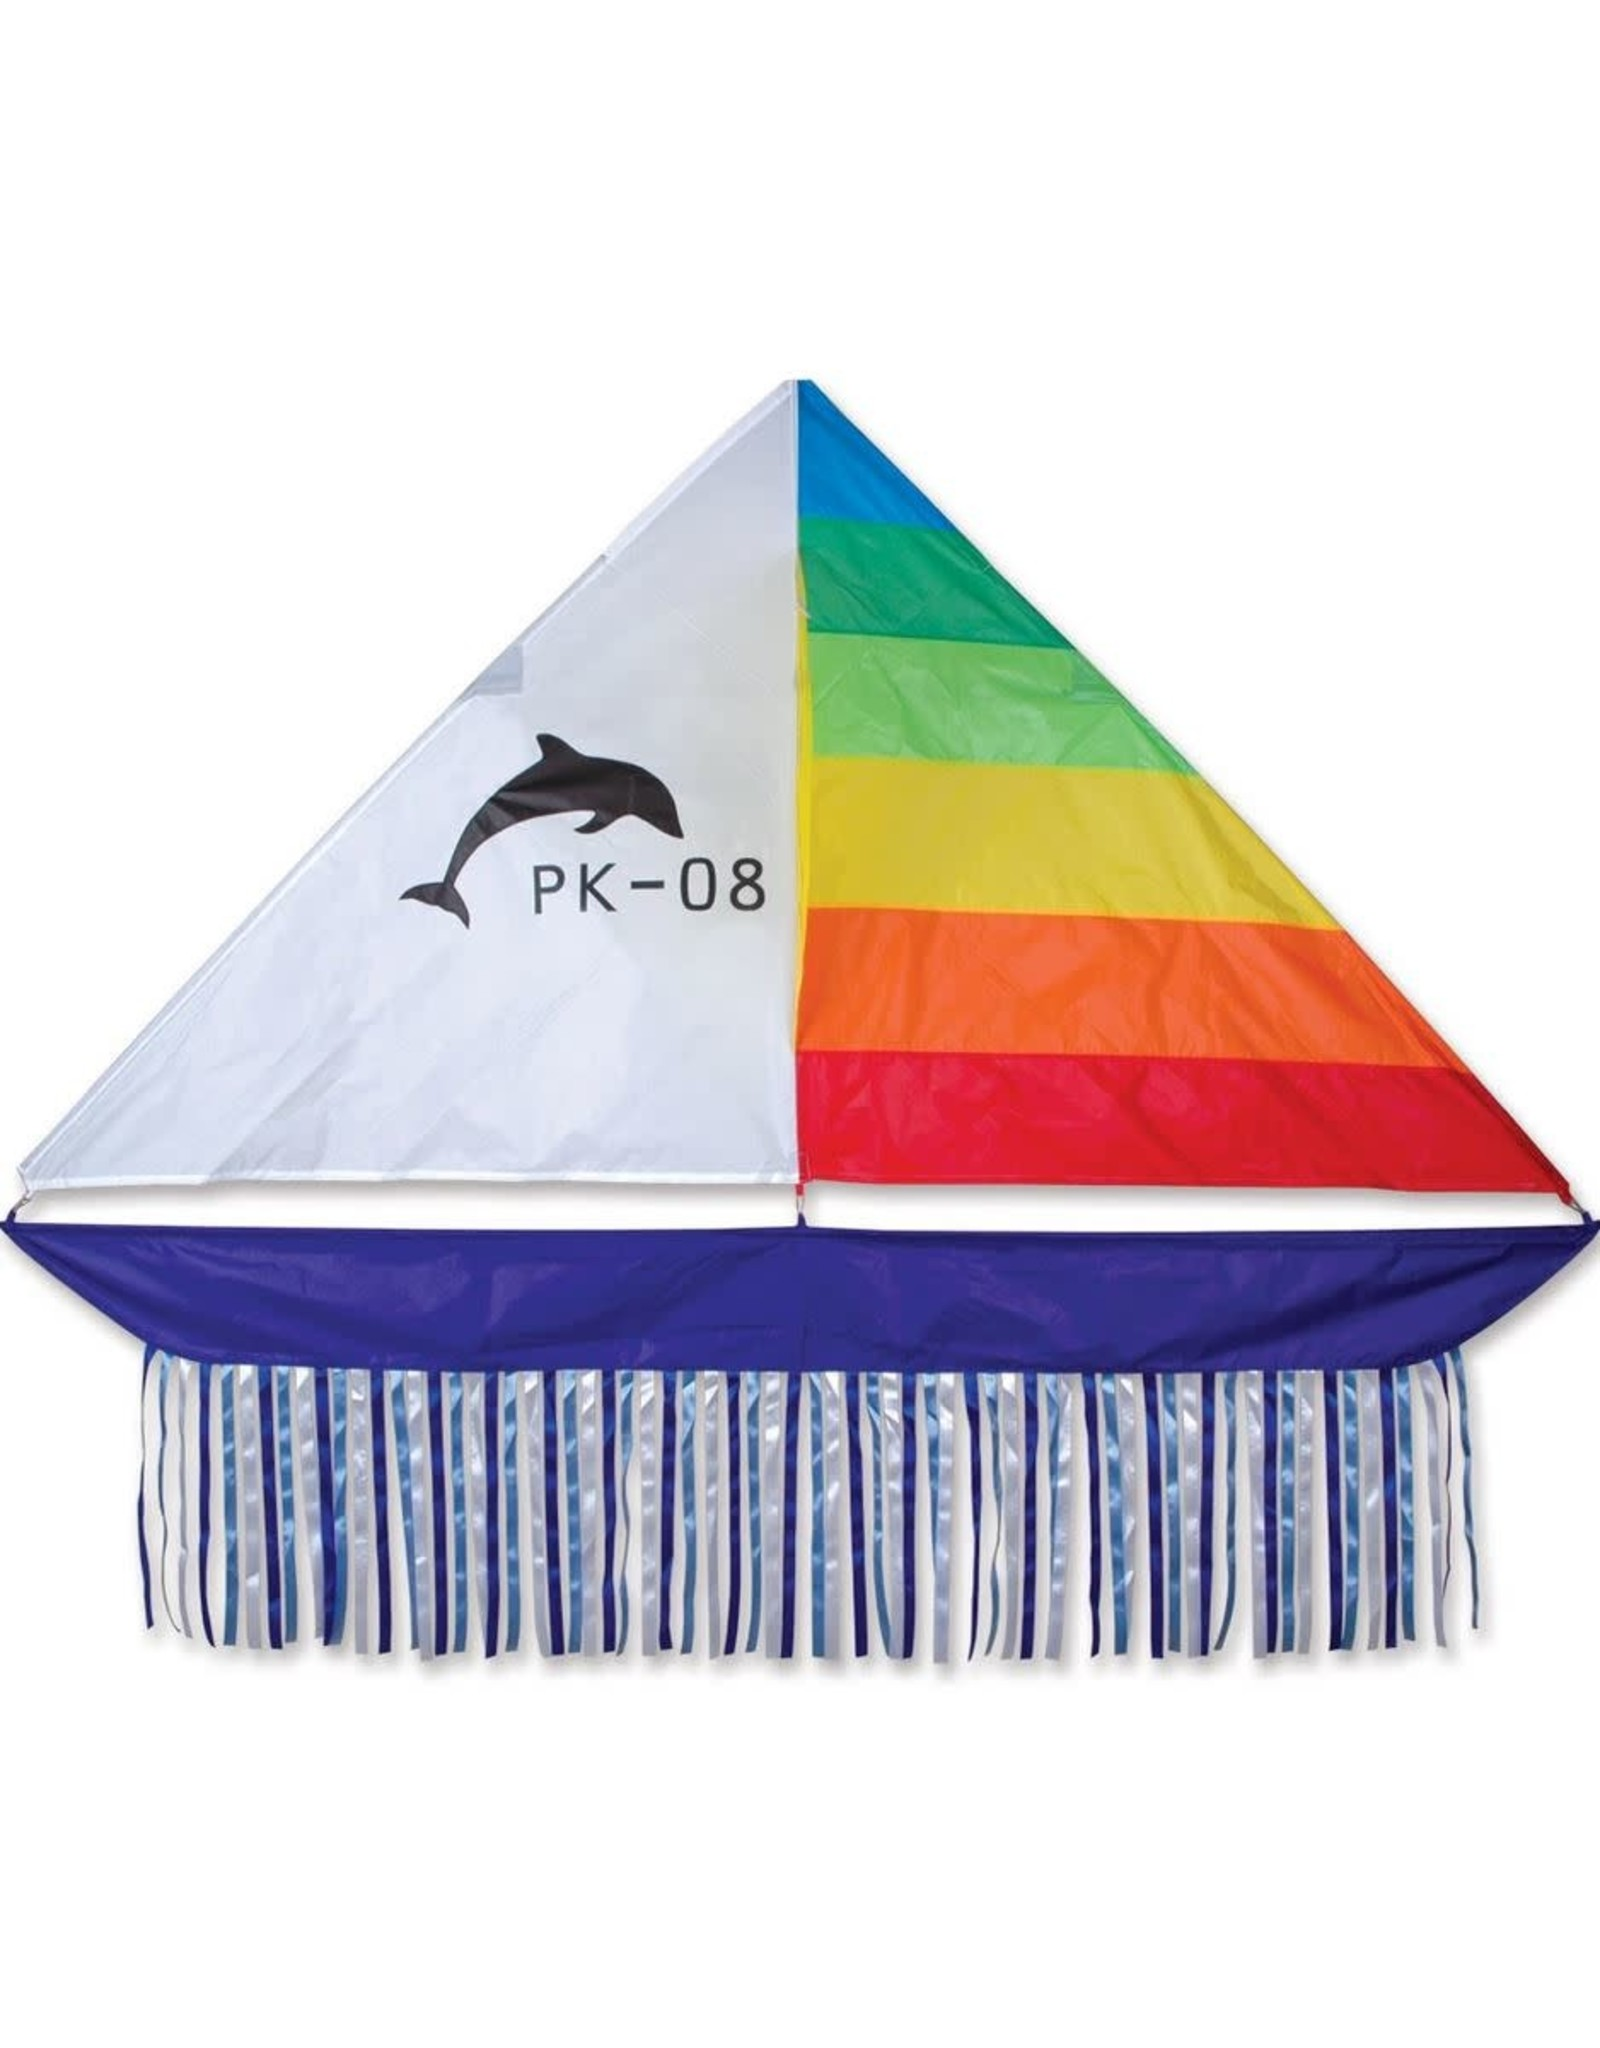 Premier Kites 6.5 ft. Delta Kite, Sailboat